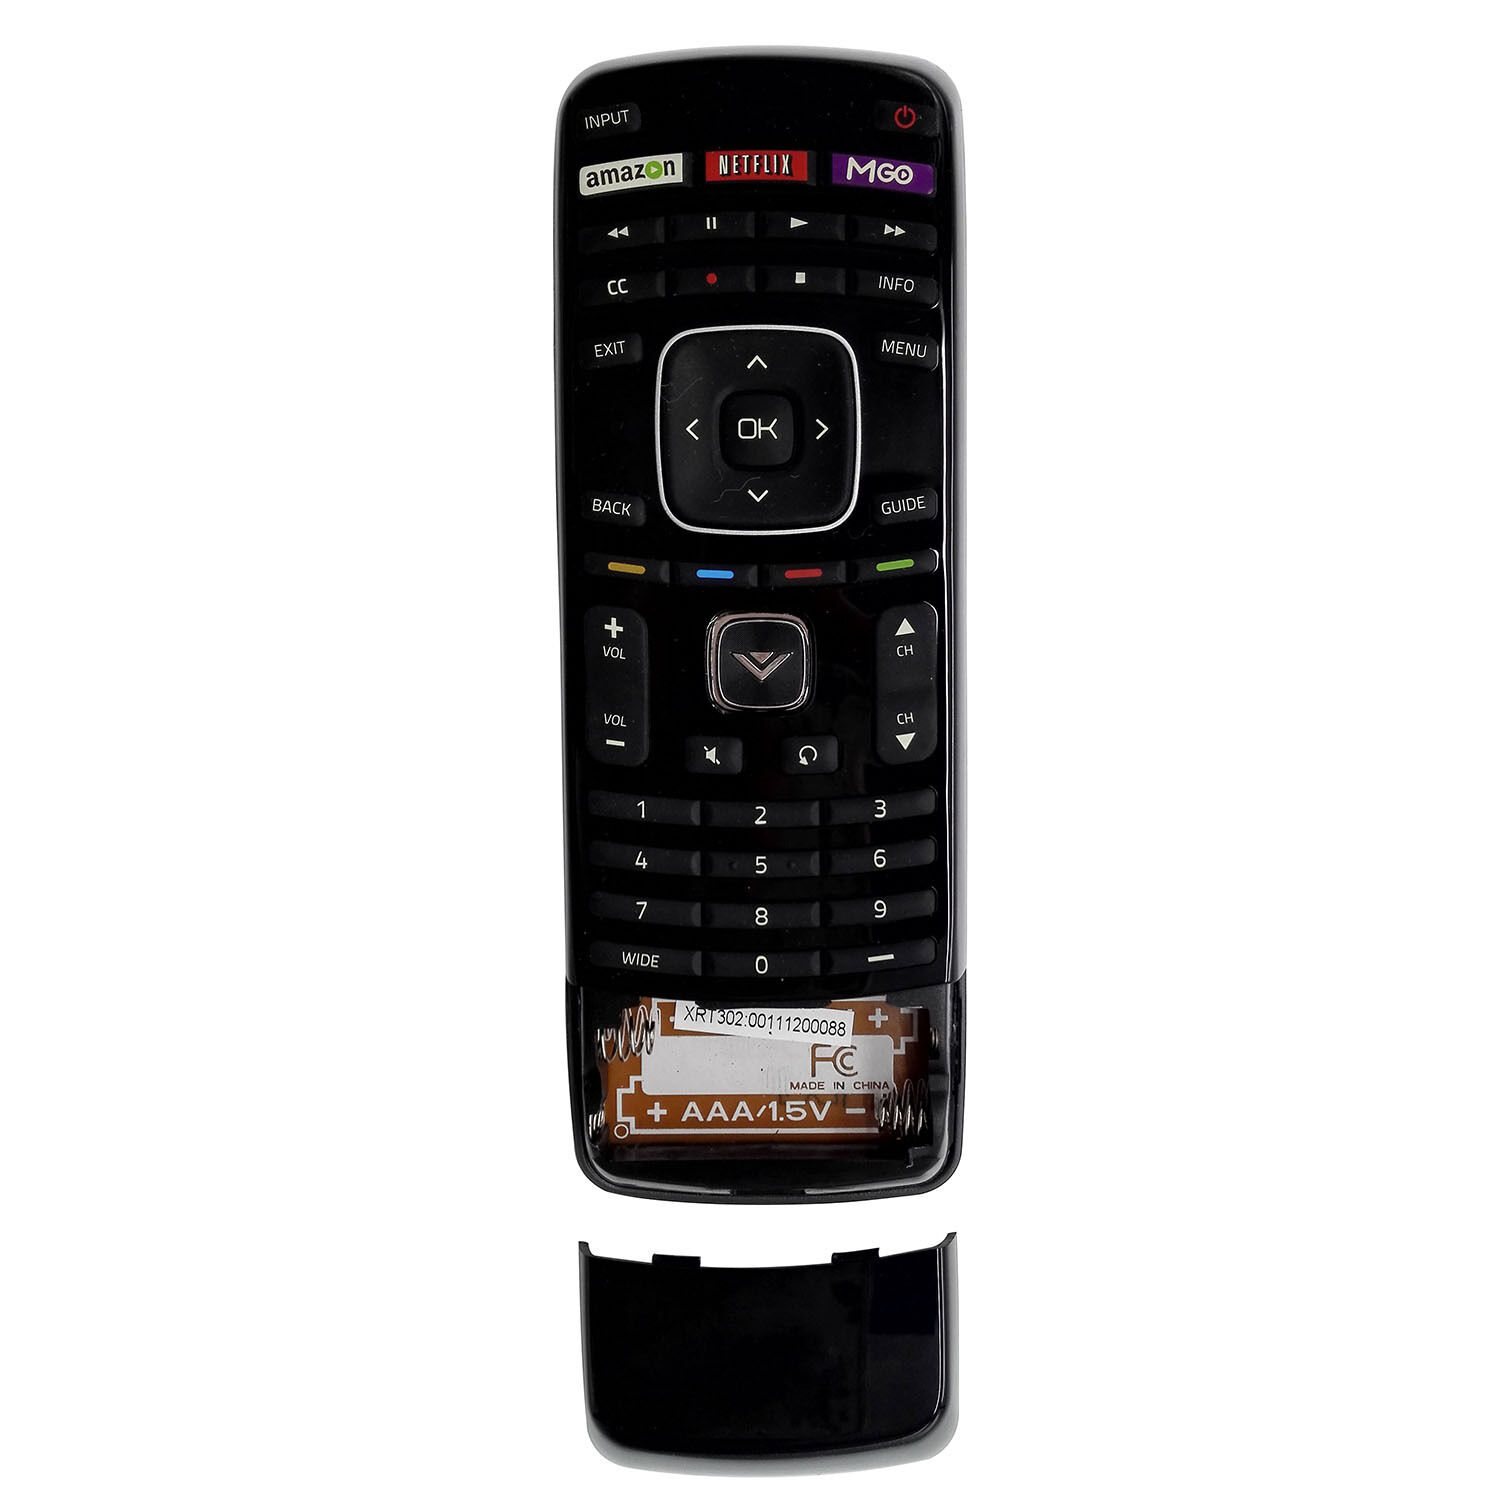 Brand New VIZIO XRT302 (XRT112 keyboard version) Remote for Smart TV with M-GO